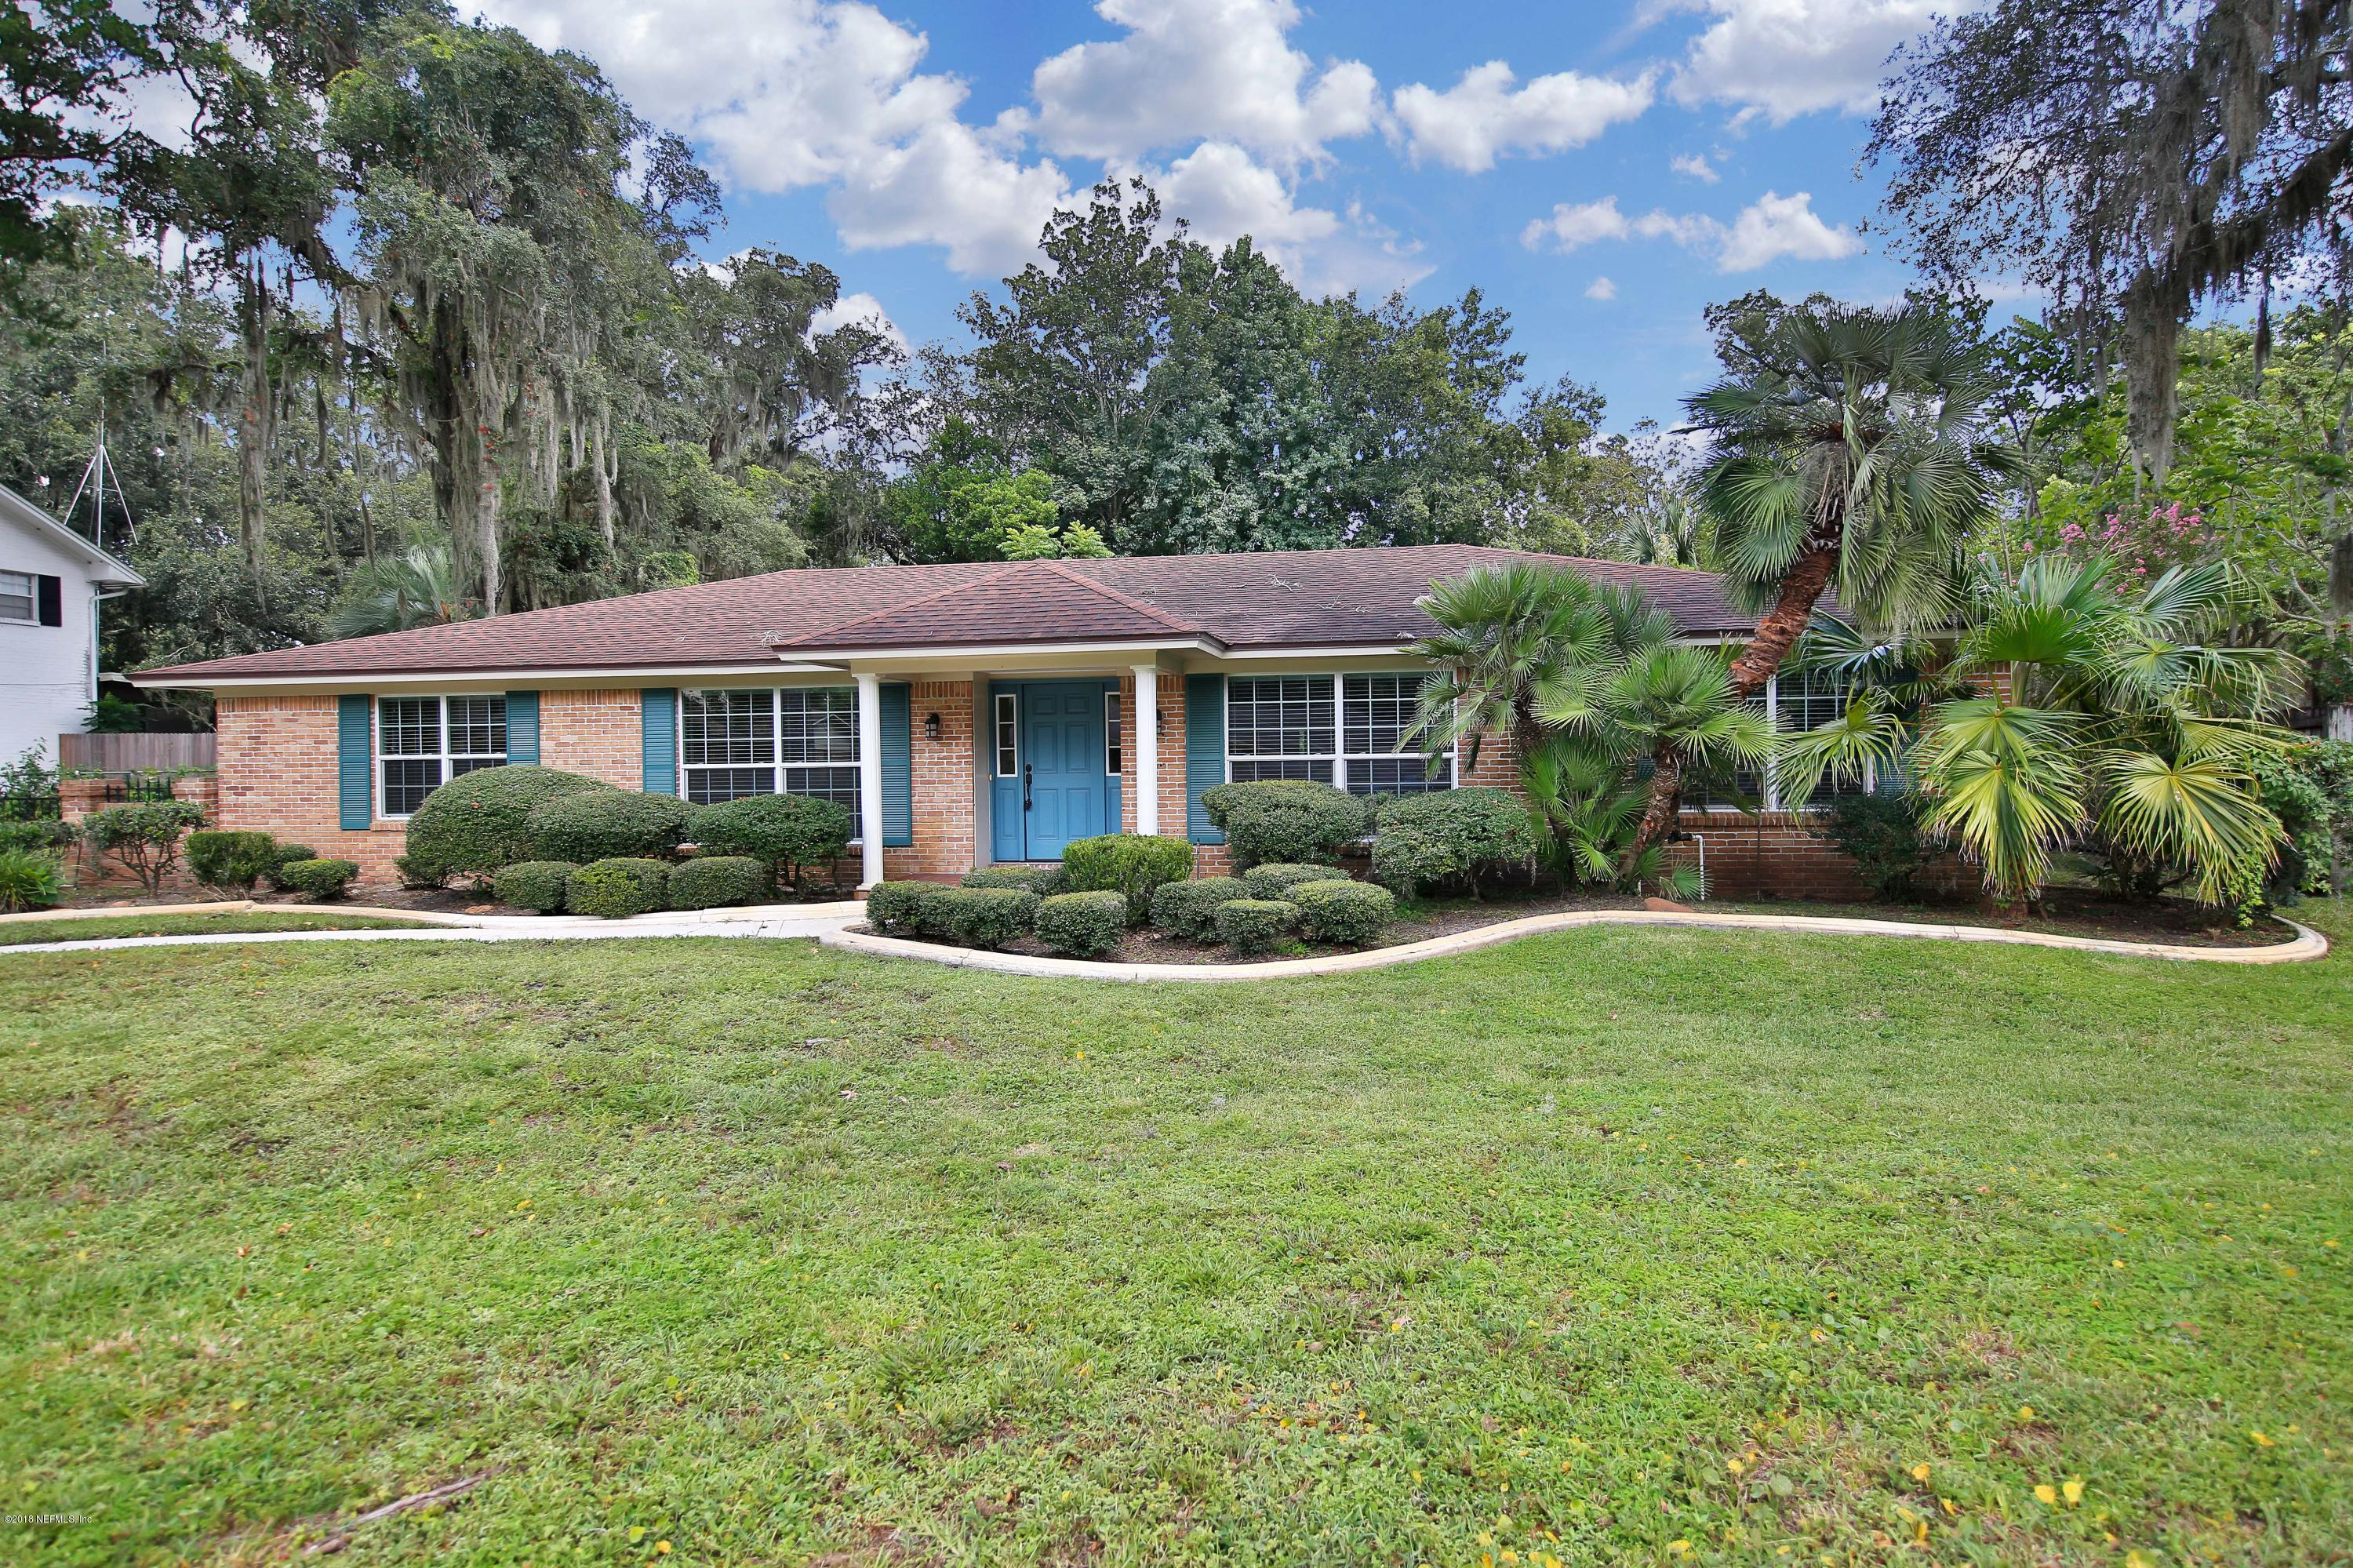 2405 EGREMONT, ORANGE PARK, FLORIDA 32073, 4 Bedrooms Bedrooms, ,2 BathroomsBathrooms,Residential - single family,For sale,EGREMONT,950274